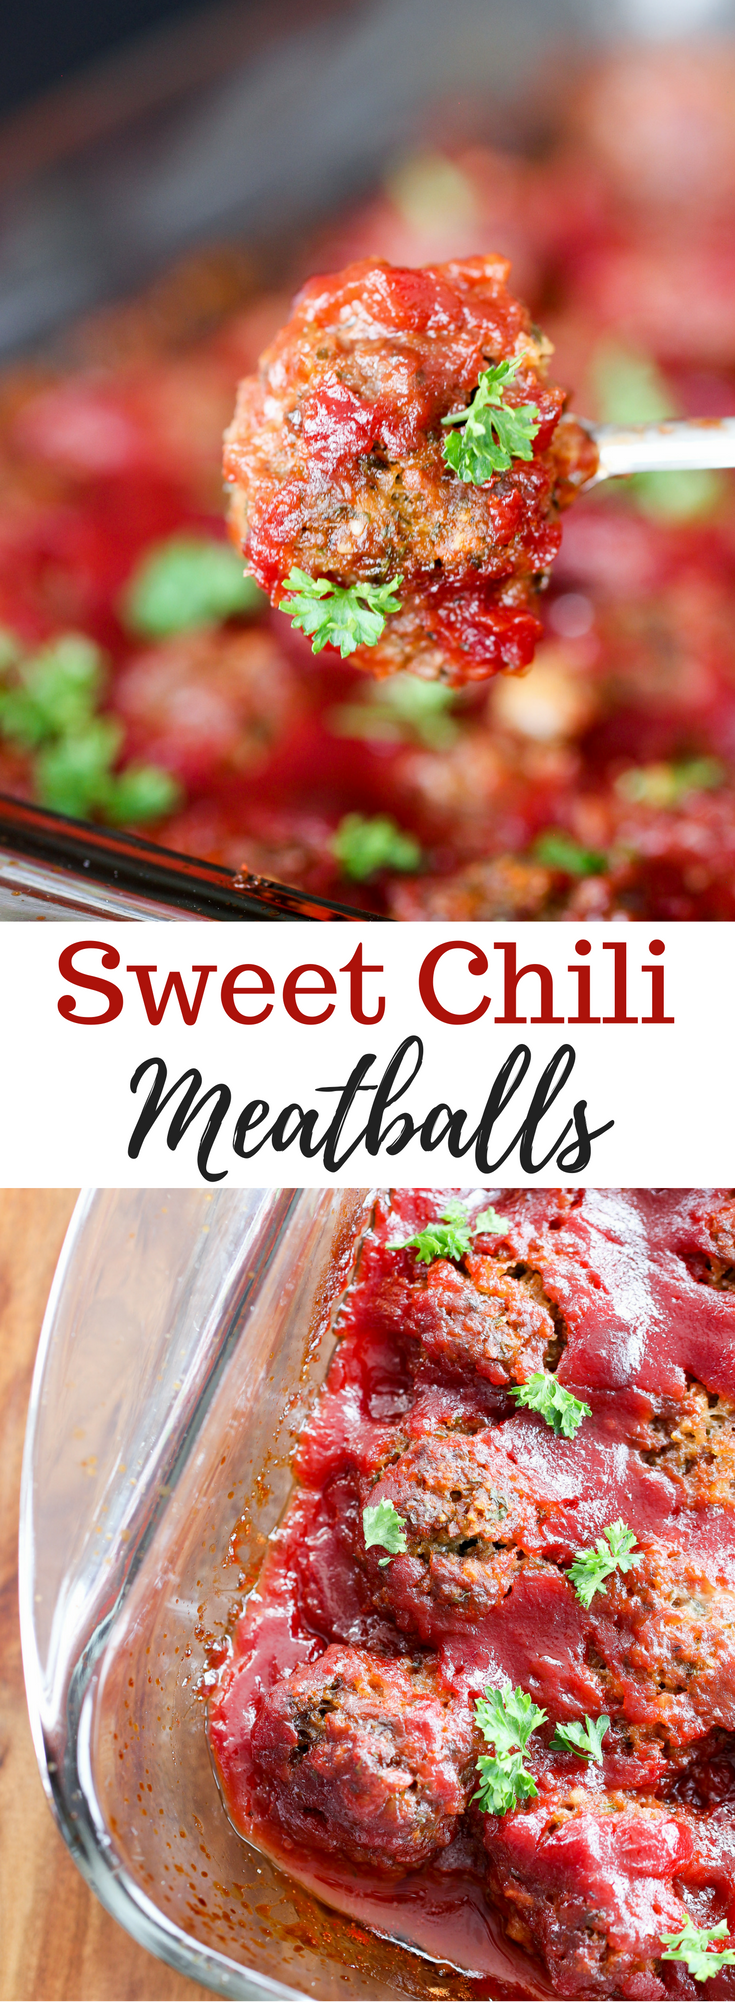 Sweet Chili Meatballs Appetizer // @thislilpiglet